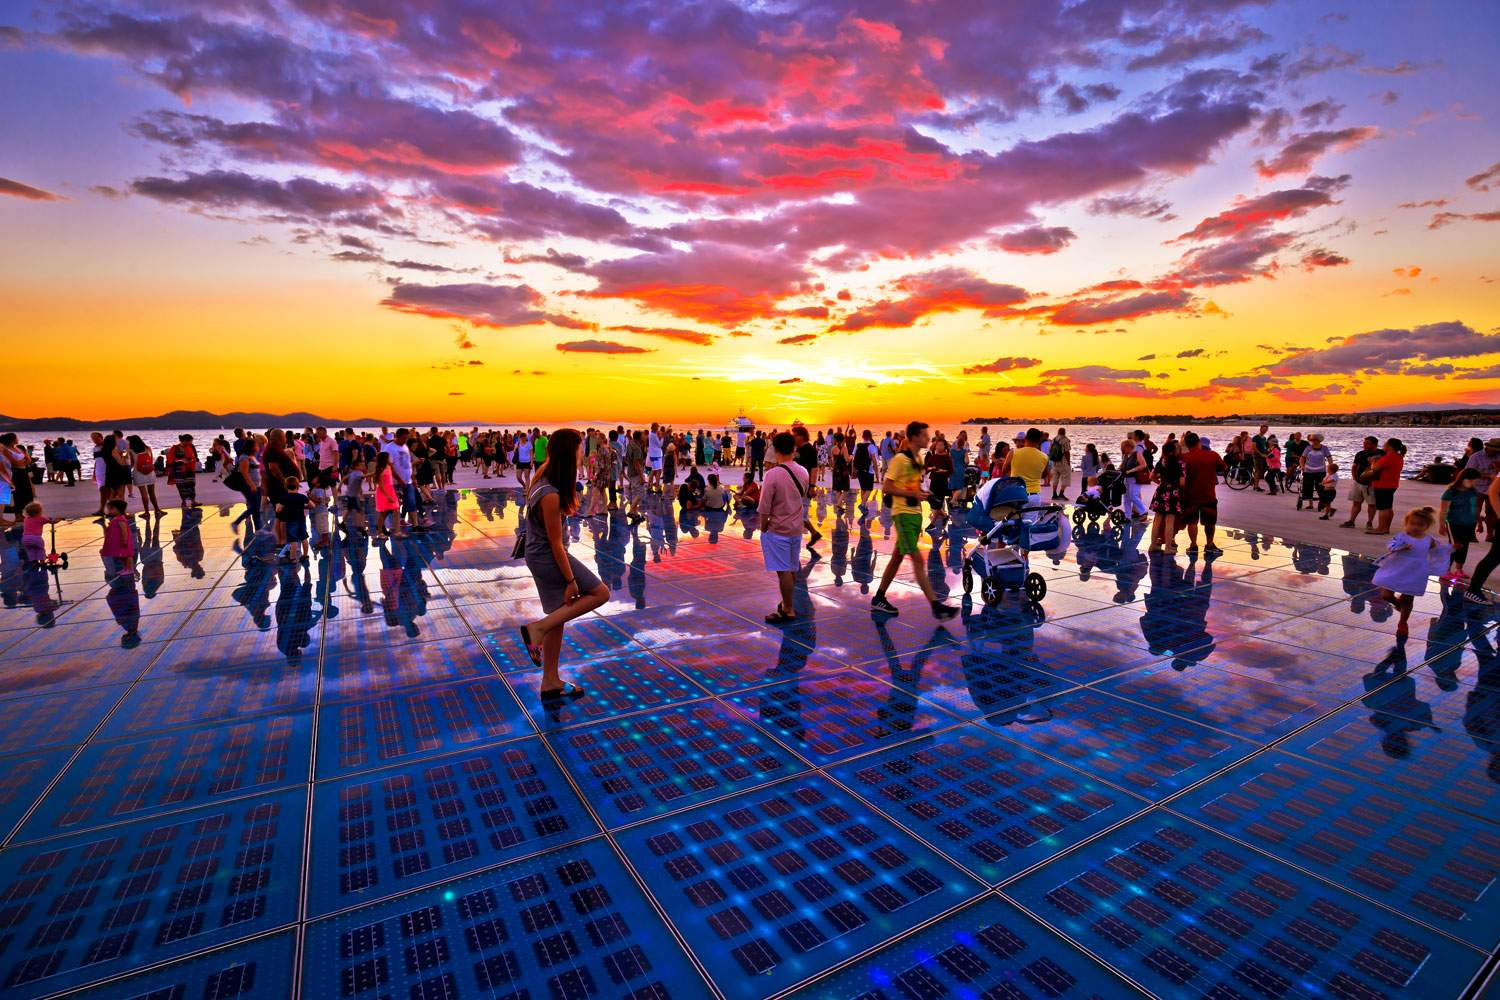 croatia-zadar-sun-salutation-best-sunset-spots